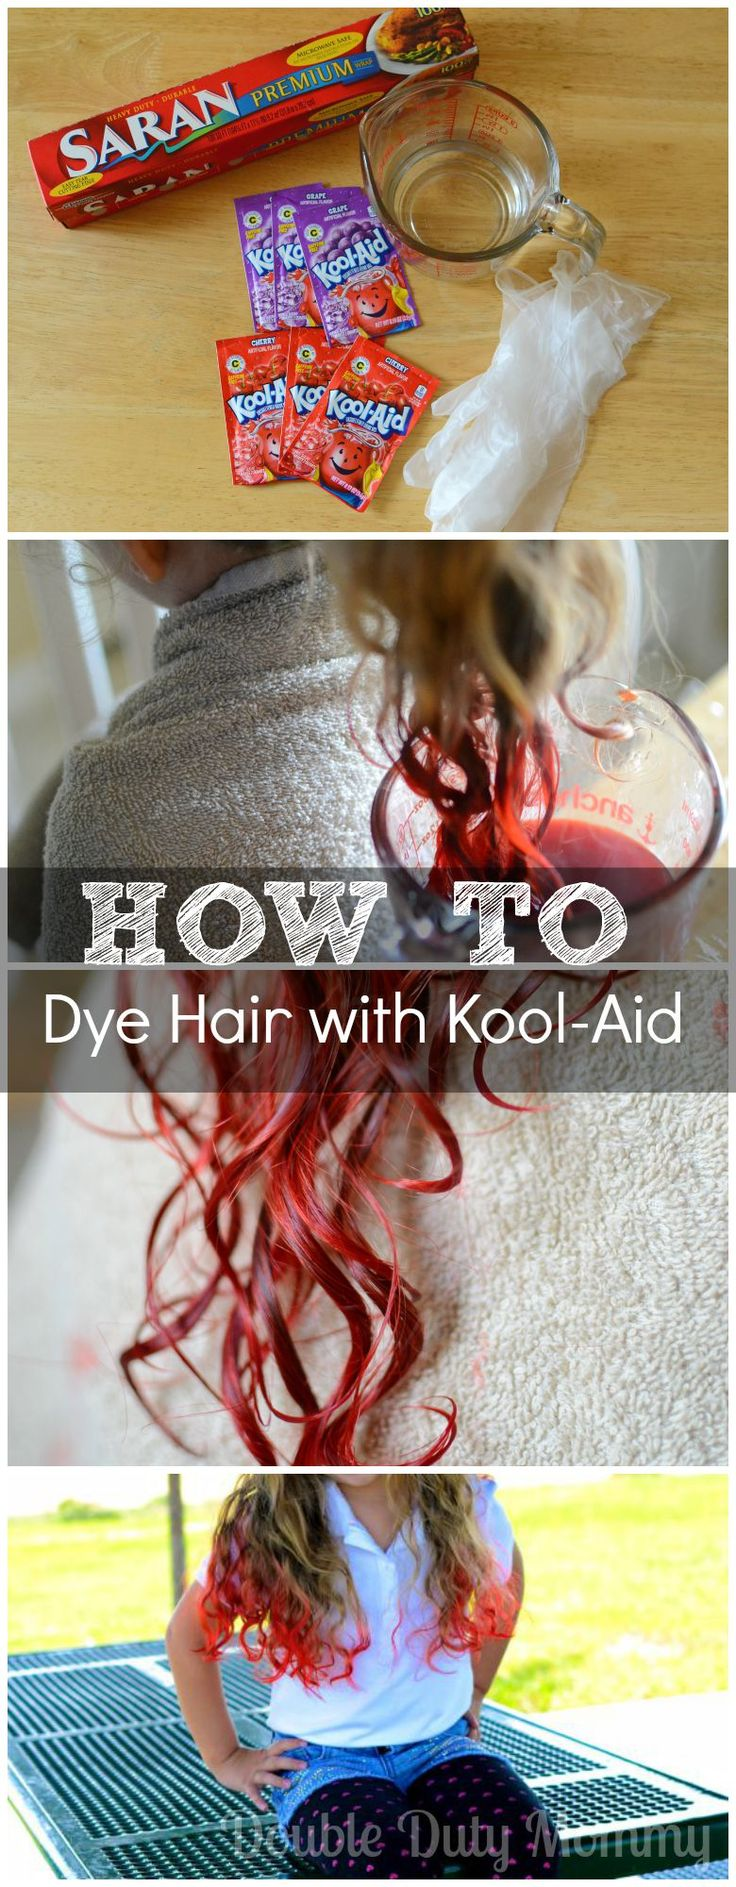 How To Easily Dye Hair with Kool-Aid! #hairdye #diy #haircolor #kidshair #curlyhair #koolaid  NOTE: yes, it's staining your hair... that's what hair color is, yes it takes a while to come out (depending how concentrated you make it), no you shouldn't have to cut your hair that's a drastic move. Please visit my blog and leave a comment on the post if you have any questions or concerns.